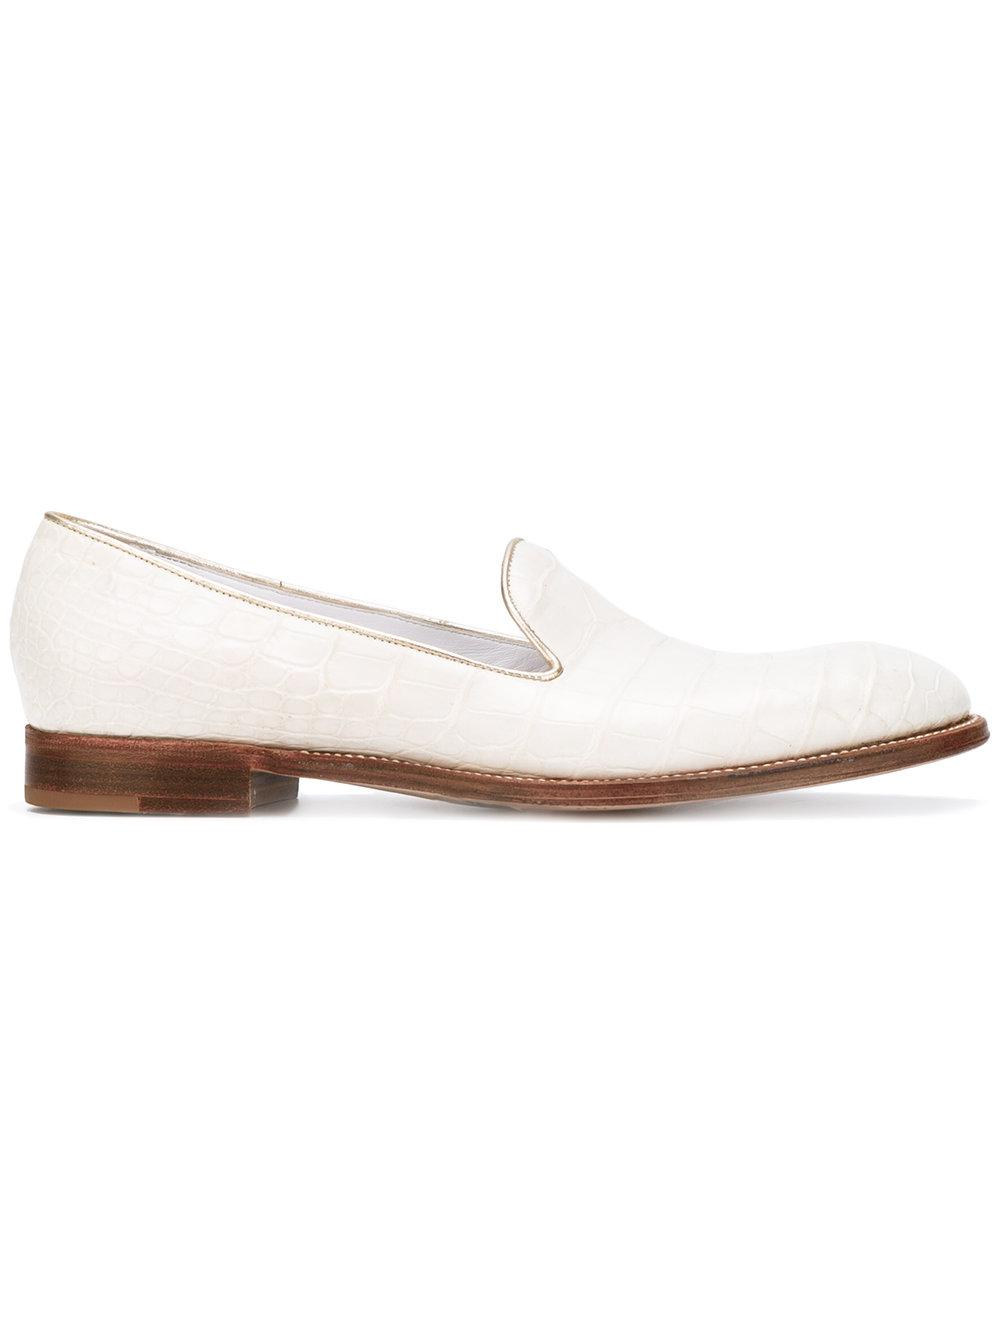 Silvano Lattanzi Metallic Trim Slippers In White